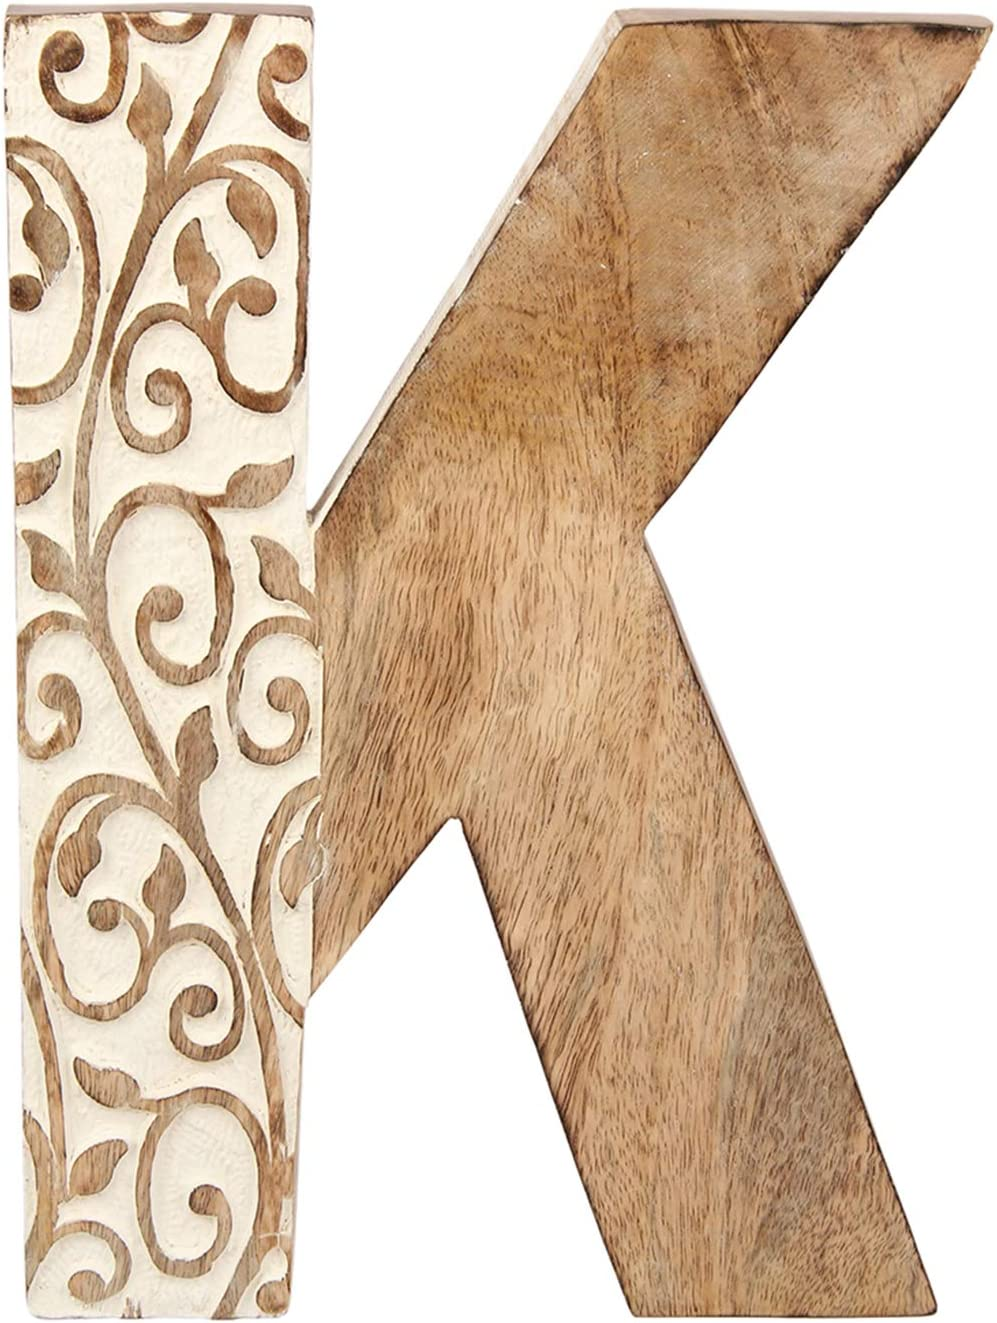 Aheli Wooden Floral Carved Home Wall Decor Sign Alphabet Letter 'K' Bollywood Wedding Parties Decorations